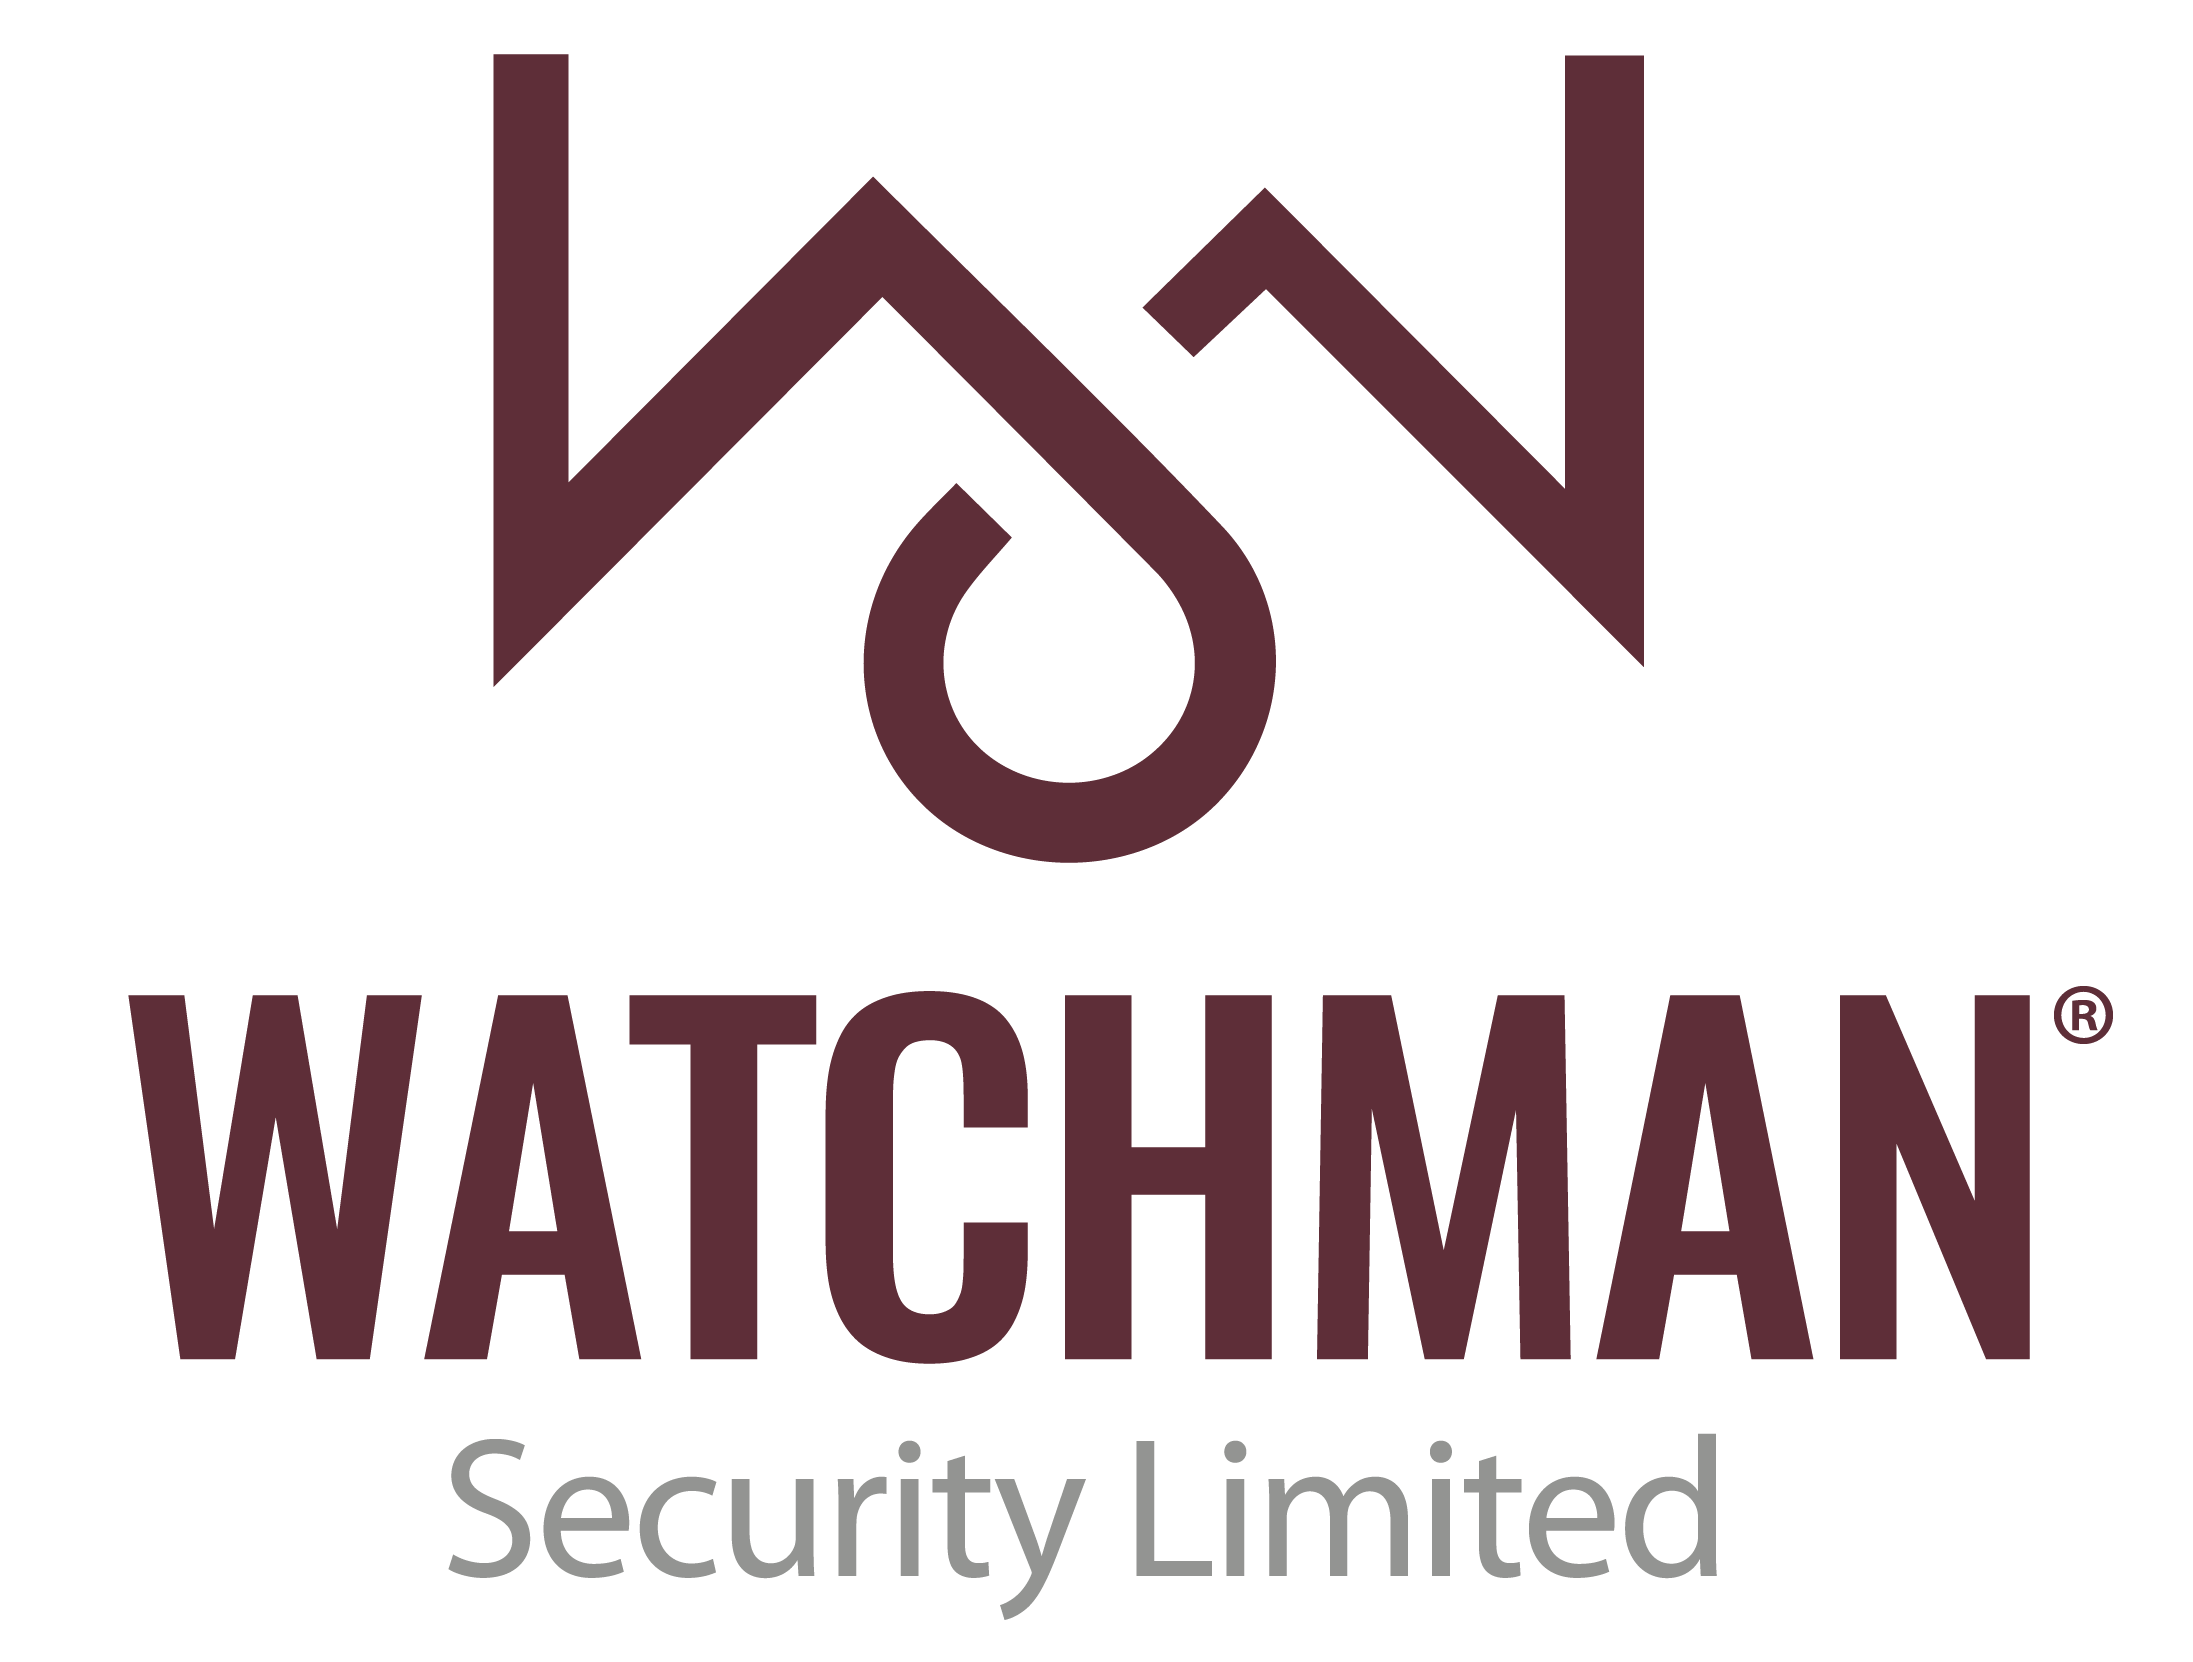 Watchman Security Limited